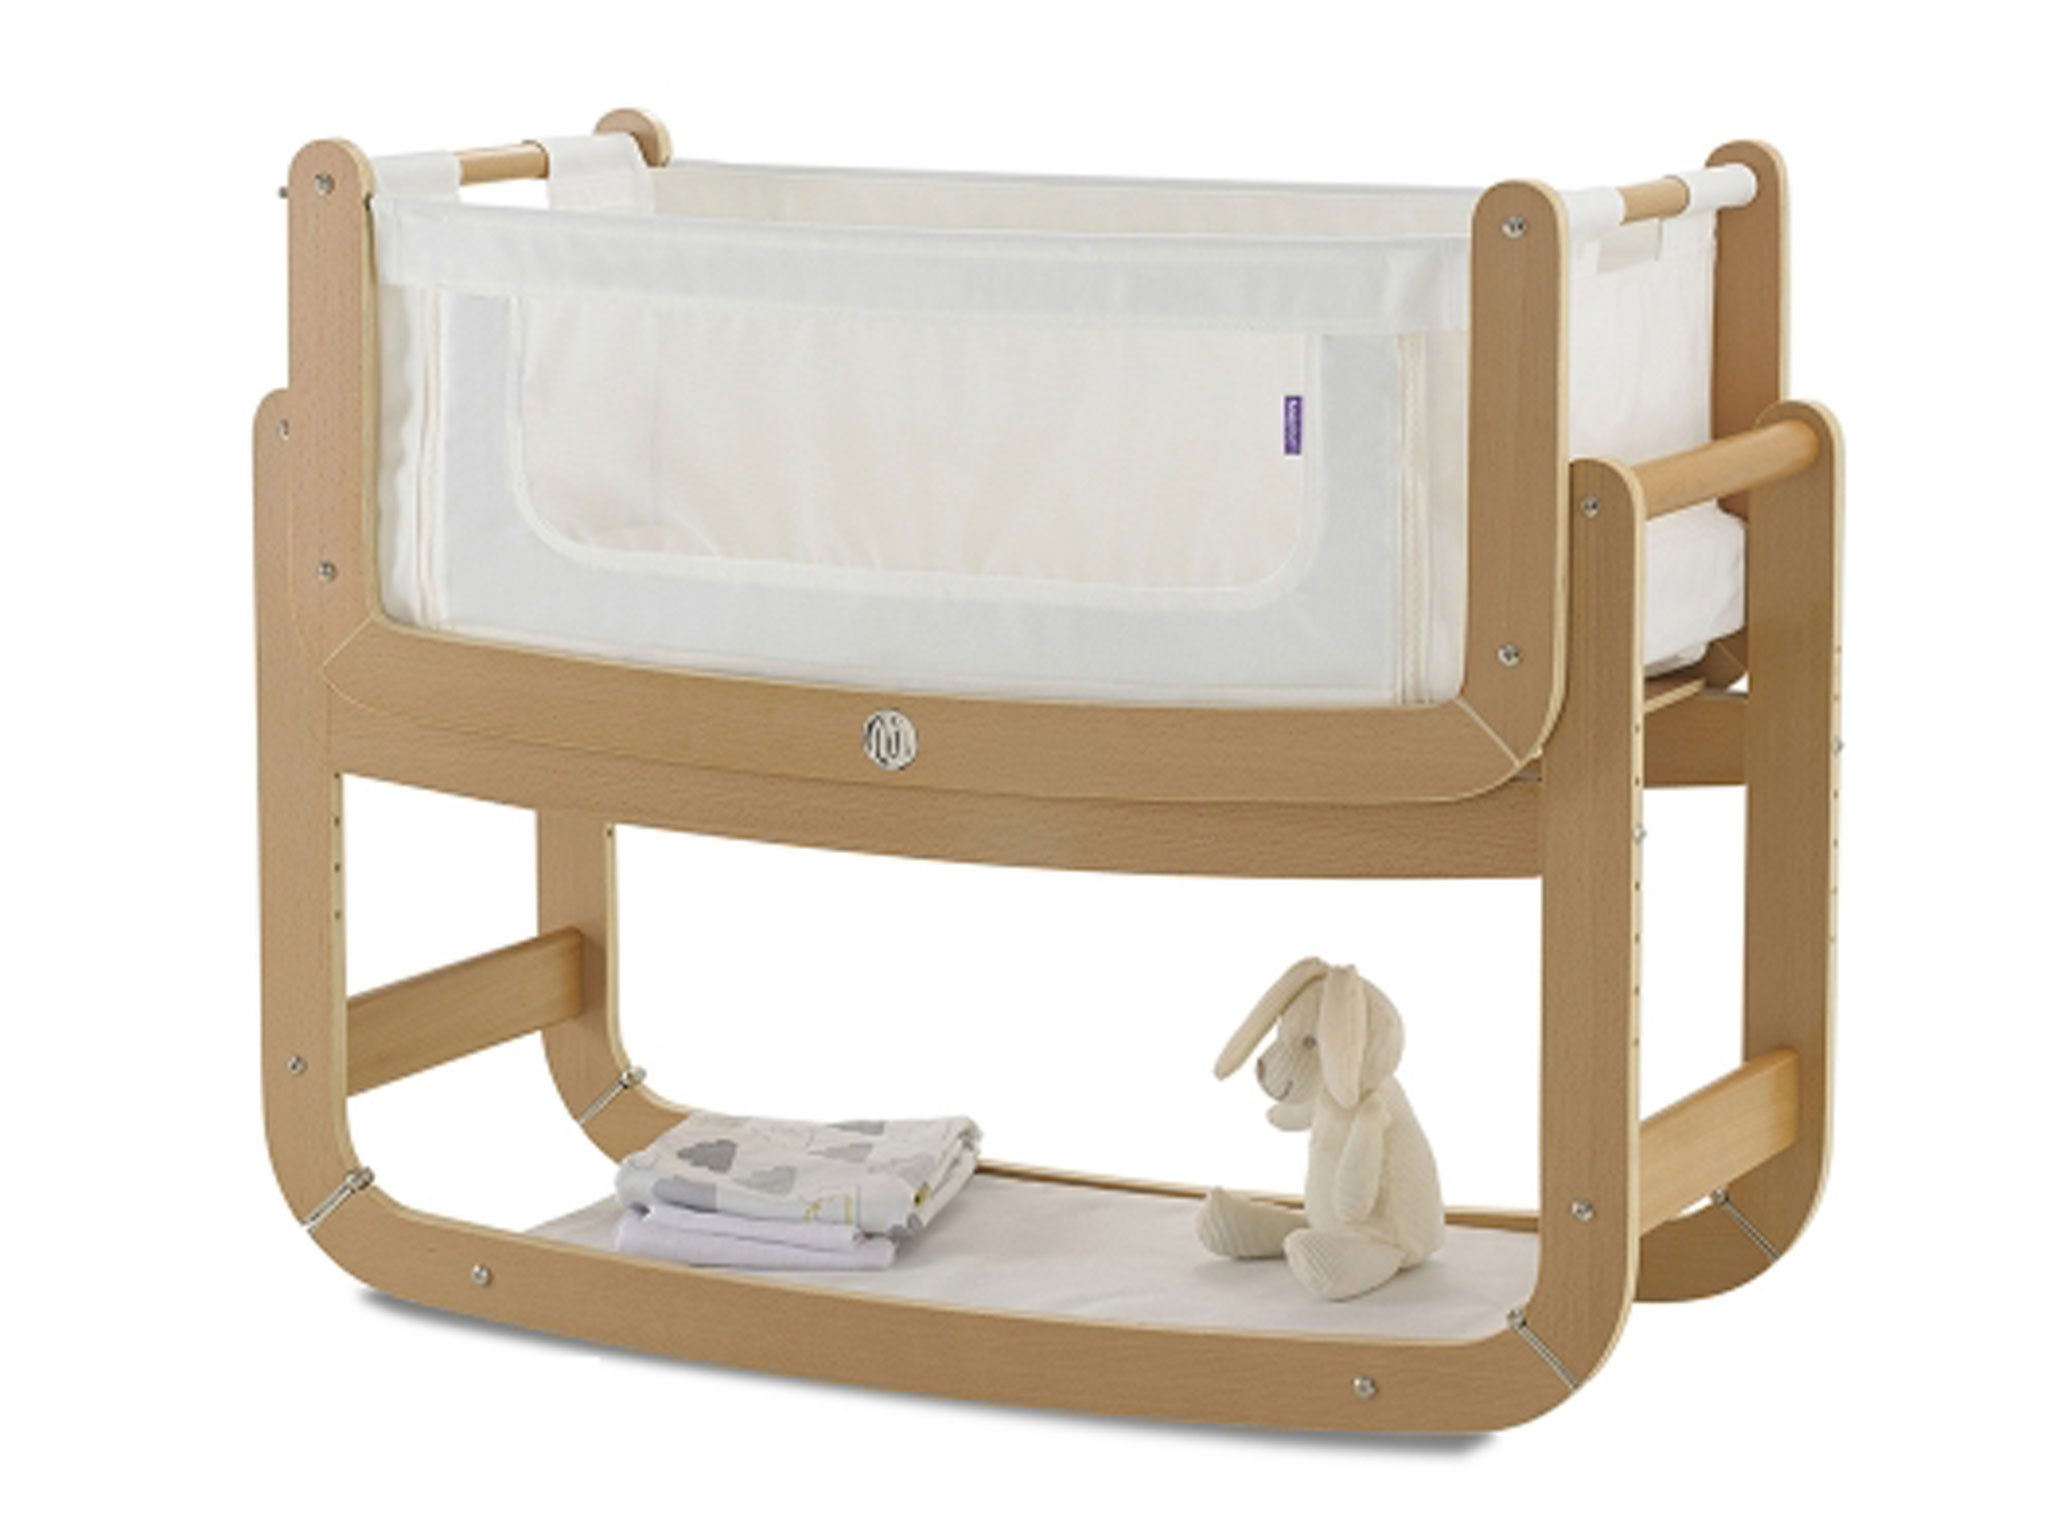 cribs anna articles without from tears to bars parenting cots beds